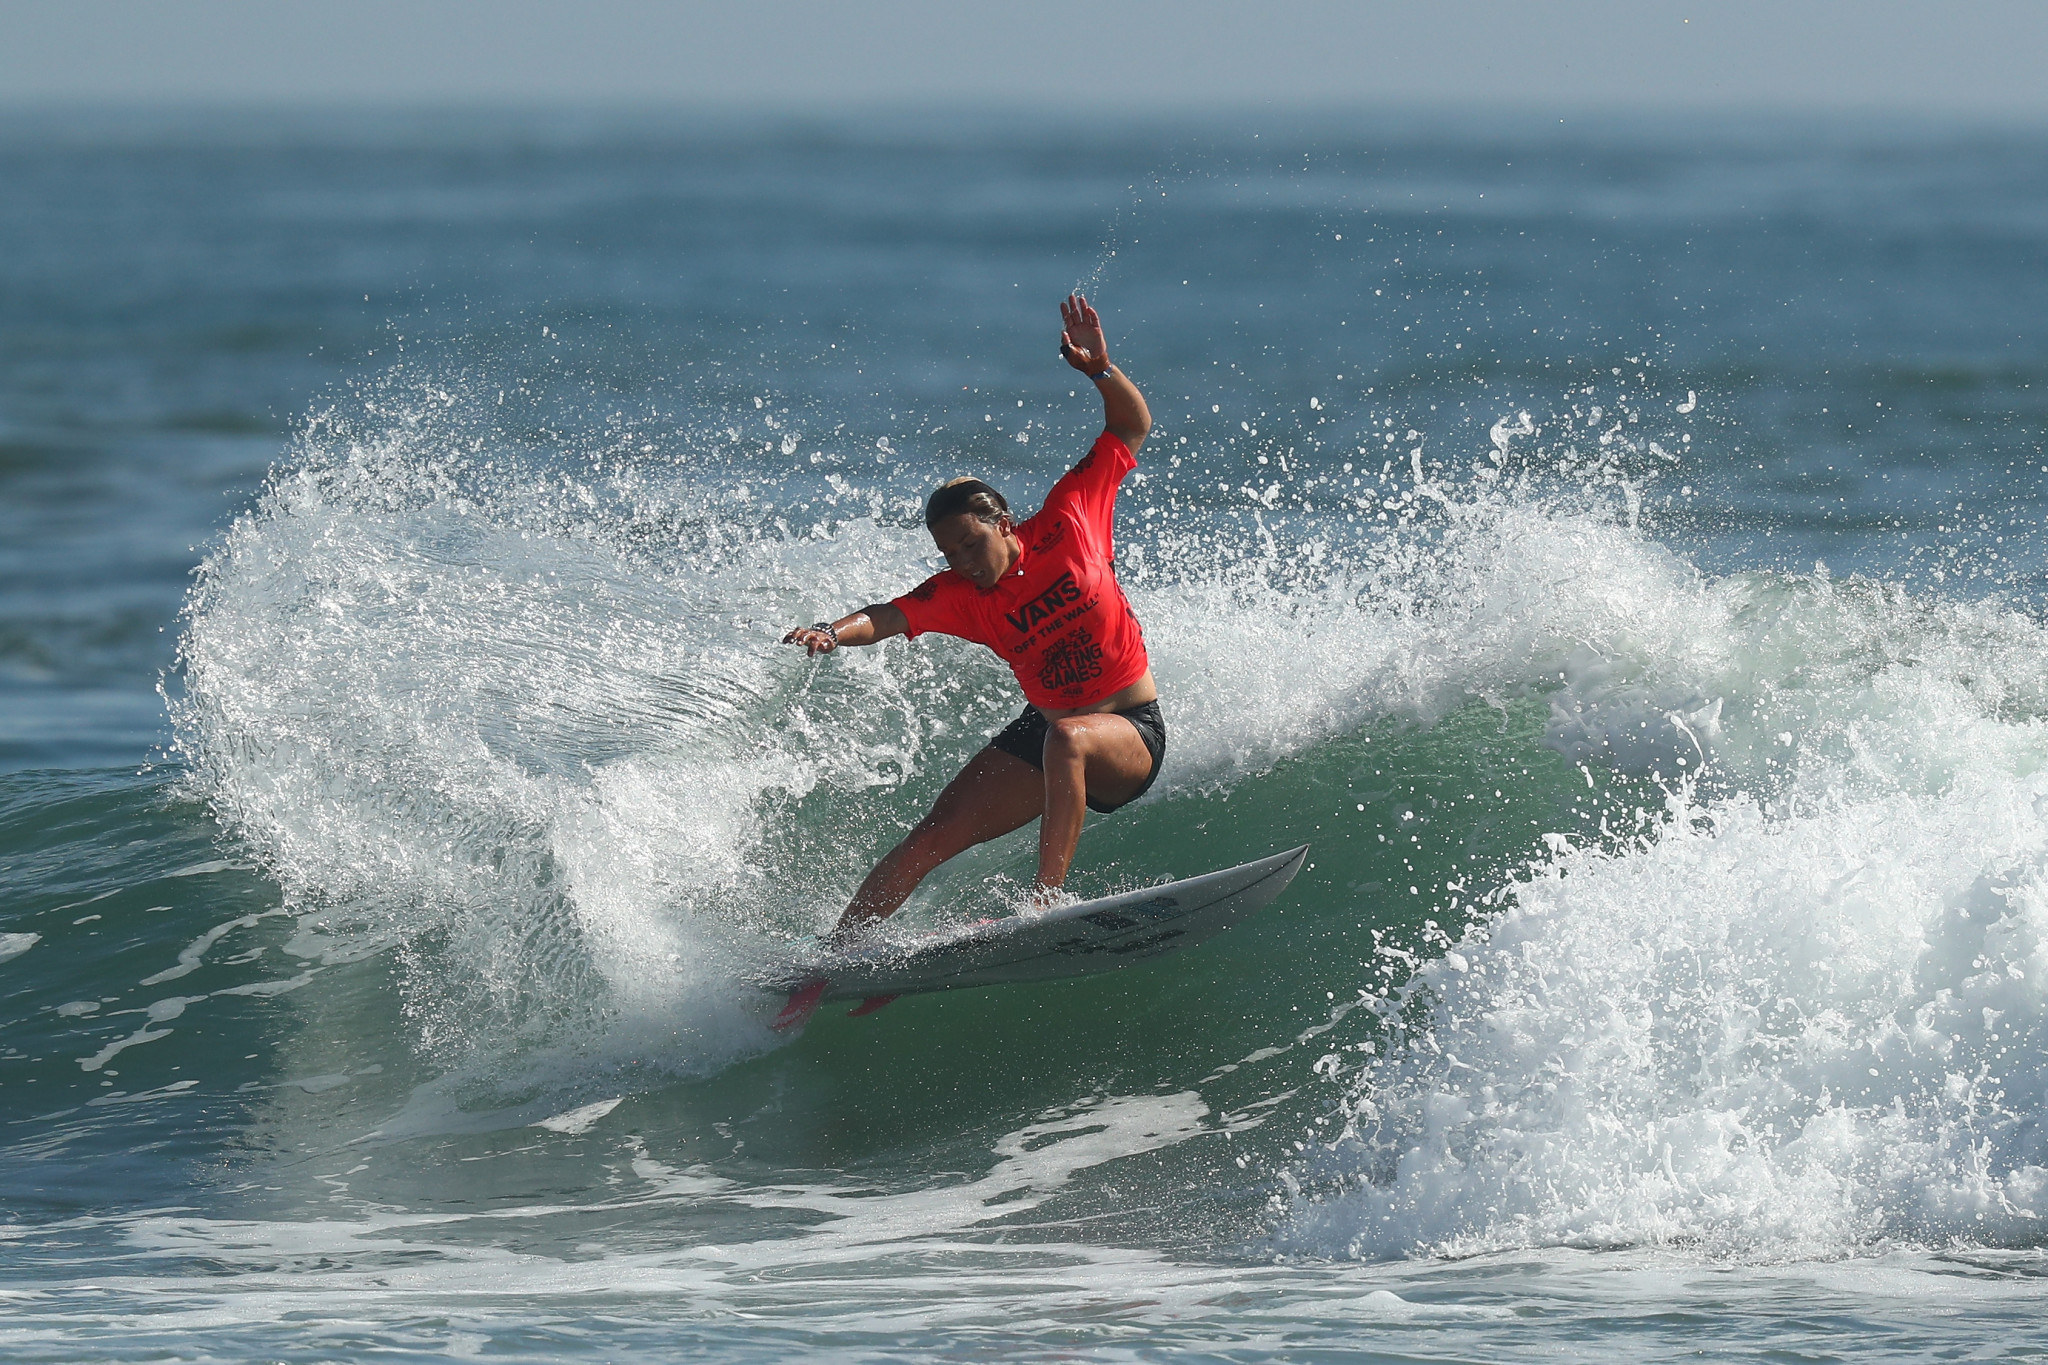 Video focuses on state of Olympic surfing in build-up to rearranged Tokyo 2020